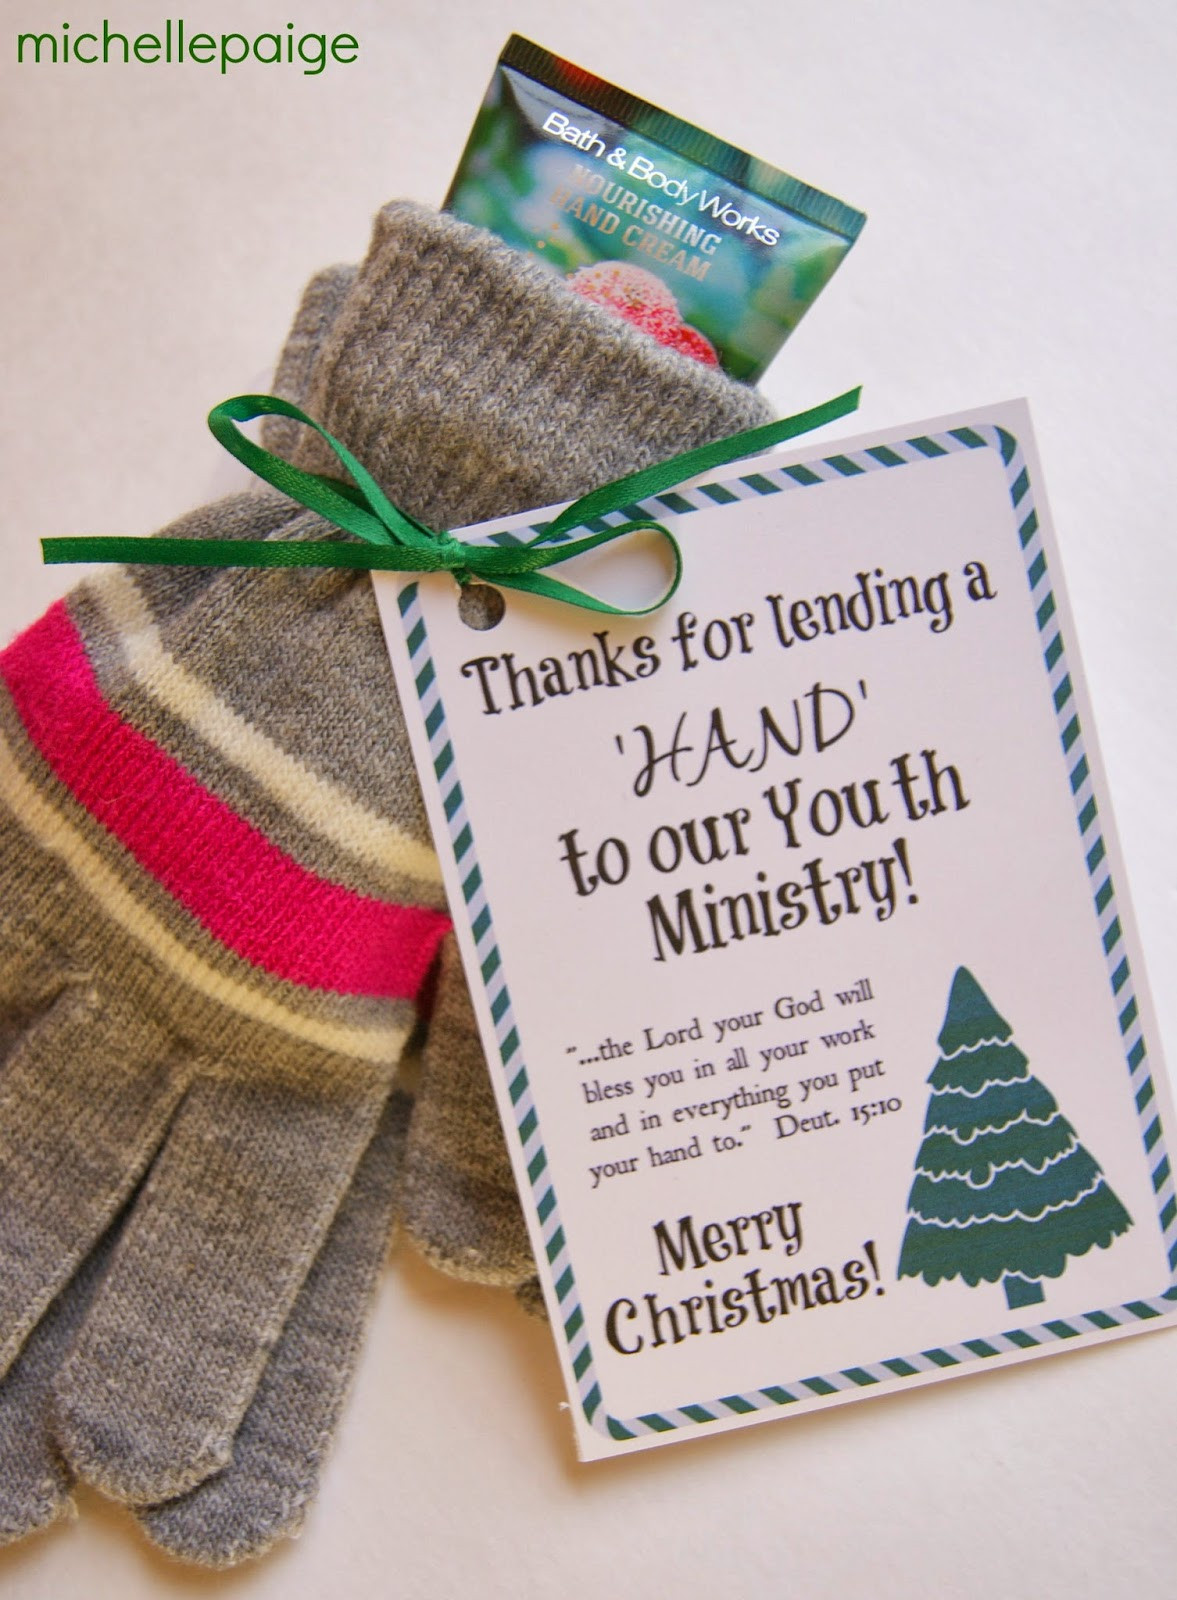 Good Thank You Gift Ideas  michelle paige blogs Youth Ministry and Children s